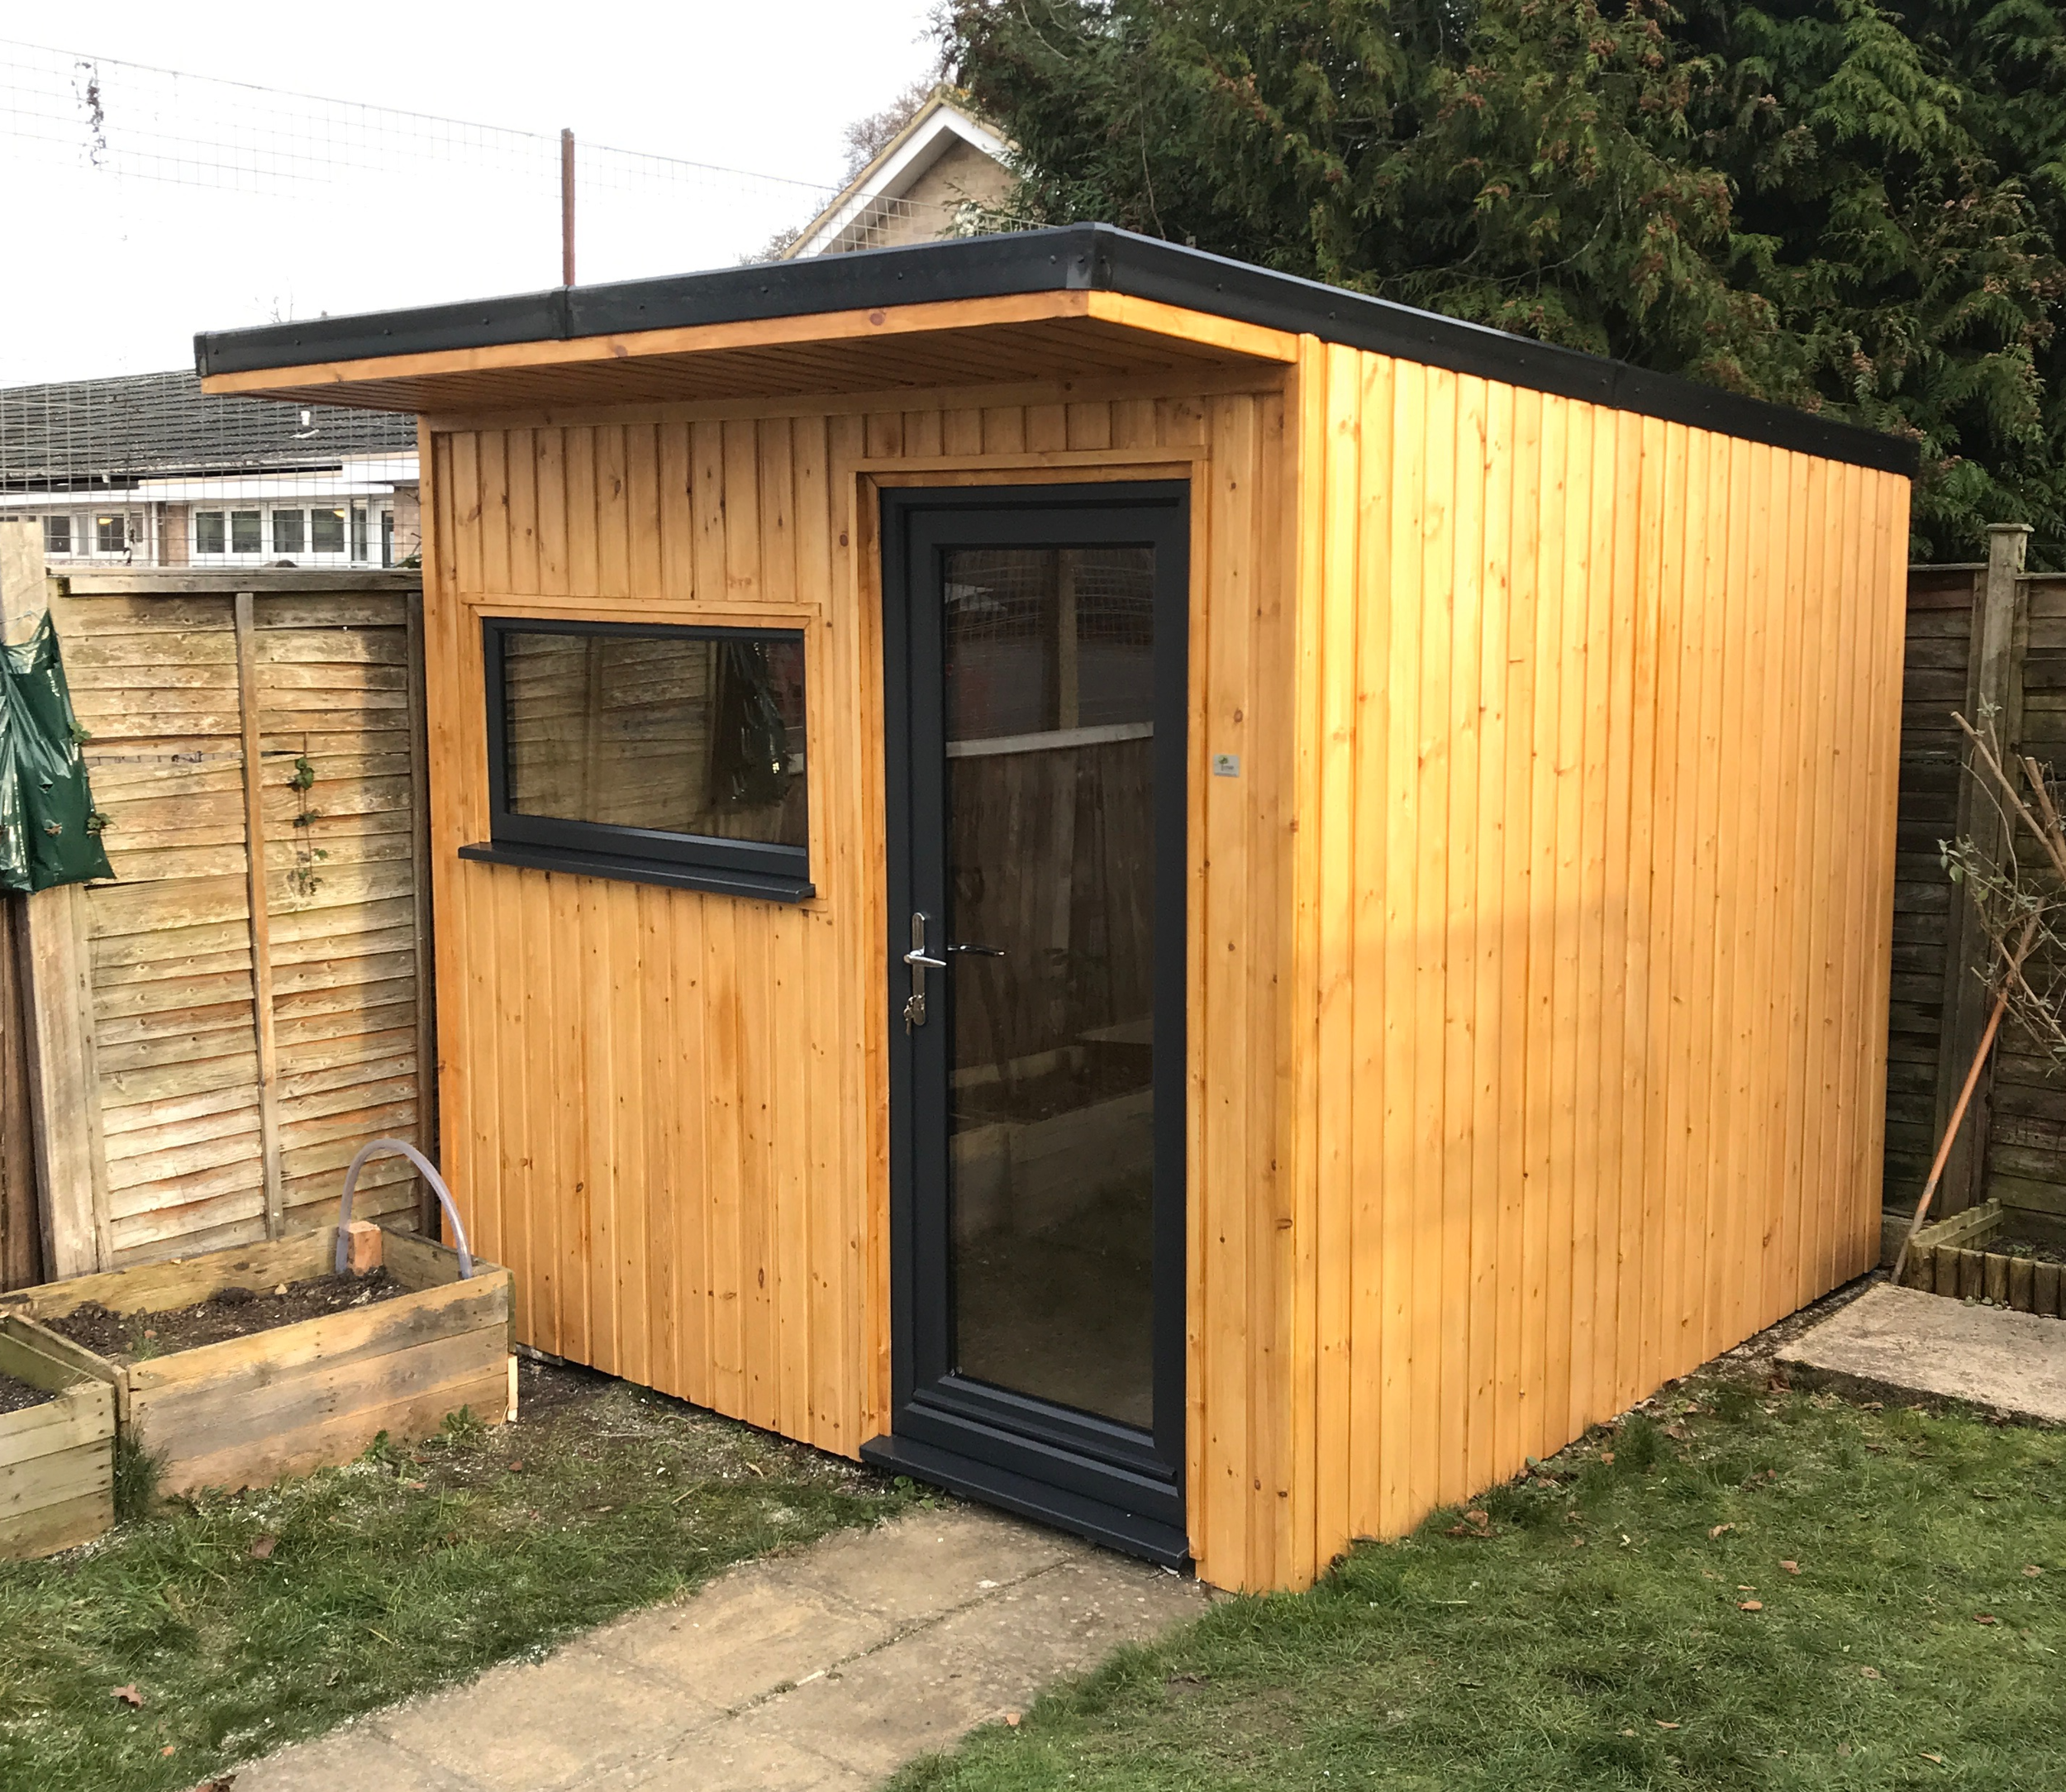 """Cheltenham Garden Office - """"From start to finish Rich was there to give me help with the space I needed to be able to work more freely at home.His designs in the space were spot on and was perfect for what I thought i wanted.The craftsmanship is second to none, every detail taken care of and my home office is stunning to look at. It hardly took any time at all to build. No mess , no fuss at all.It's lovely and warm, cant hear noise outside and it even has its own doorbell.Would thoroughly recommended R Design to anyone who needs that extra bit of space. Thanks so much Rich, it is just perfect!""""Mrs Summersby - Cheltenham"""